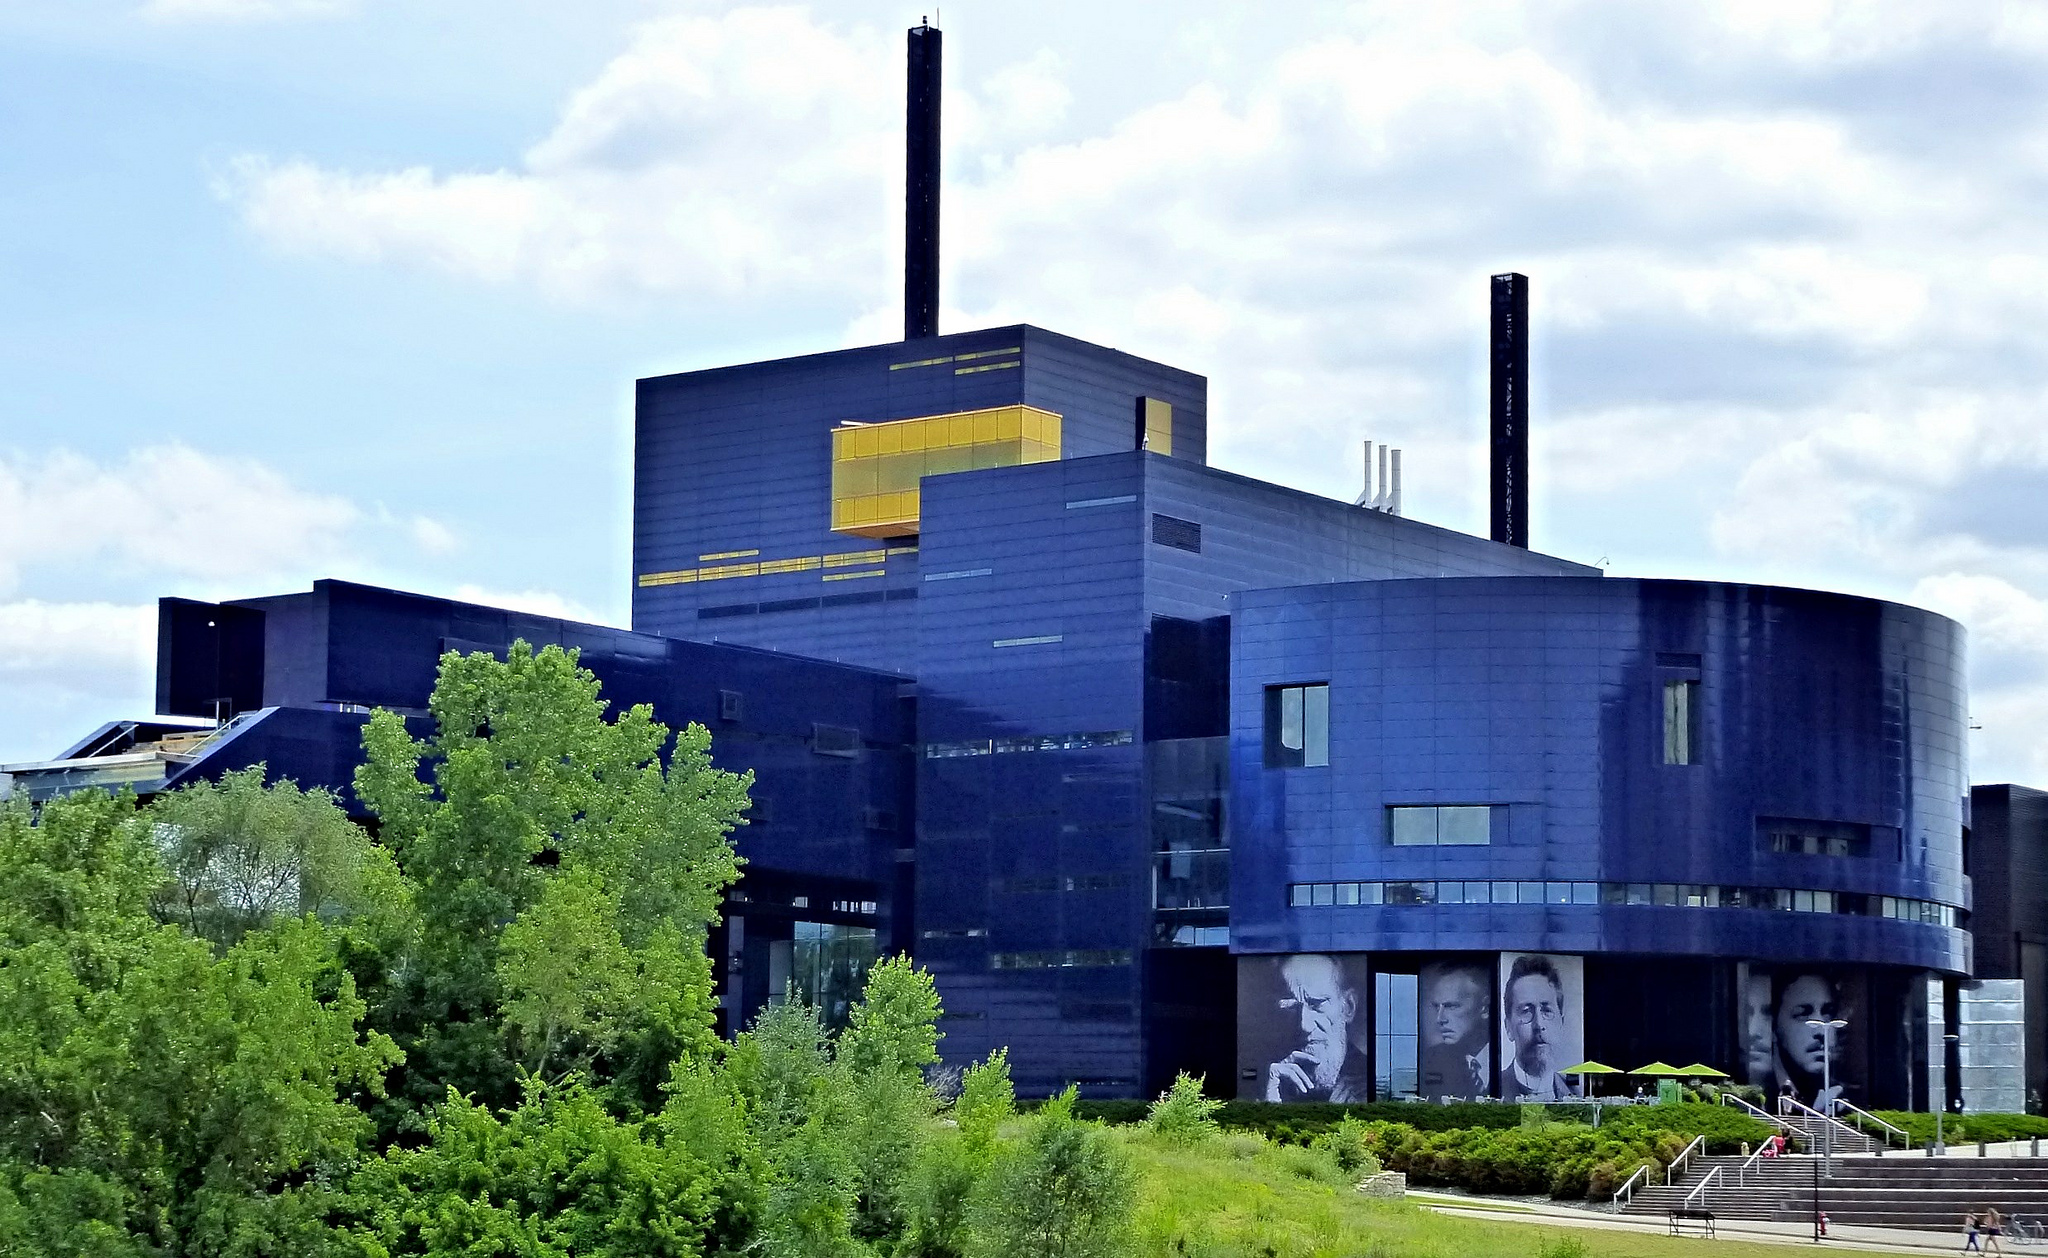 Guthrie theater public building in minneapolis for Building a house in minnesota